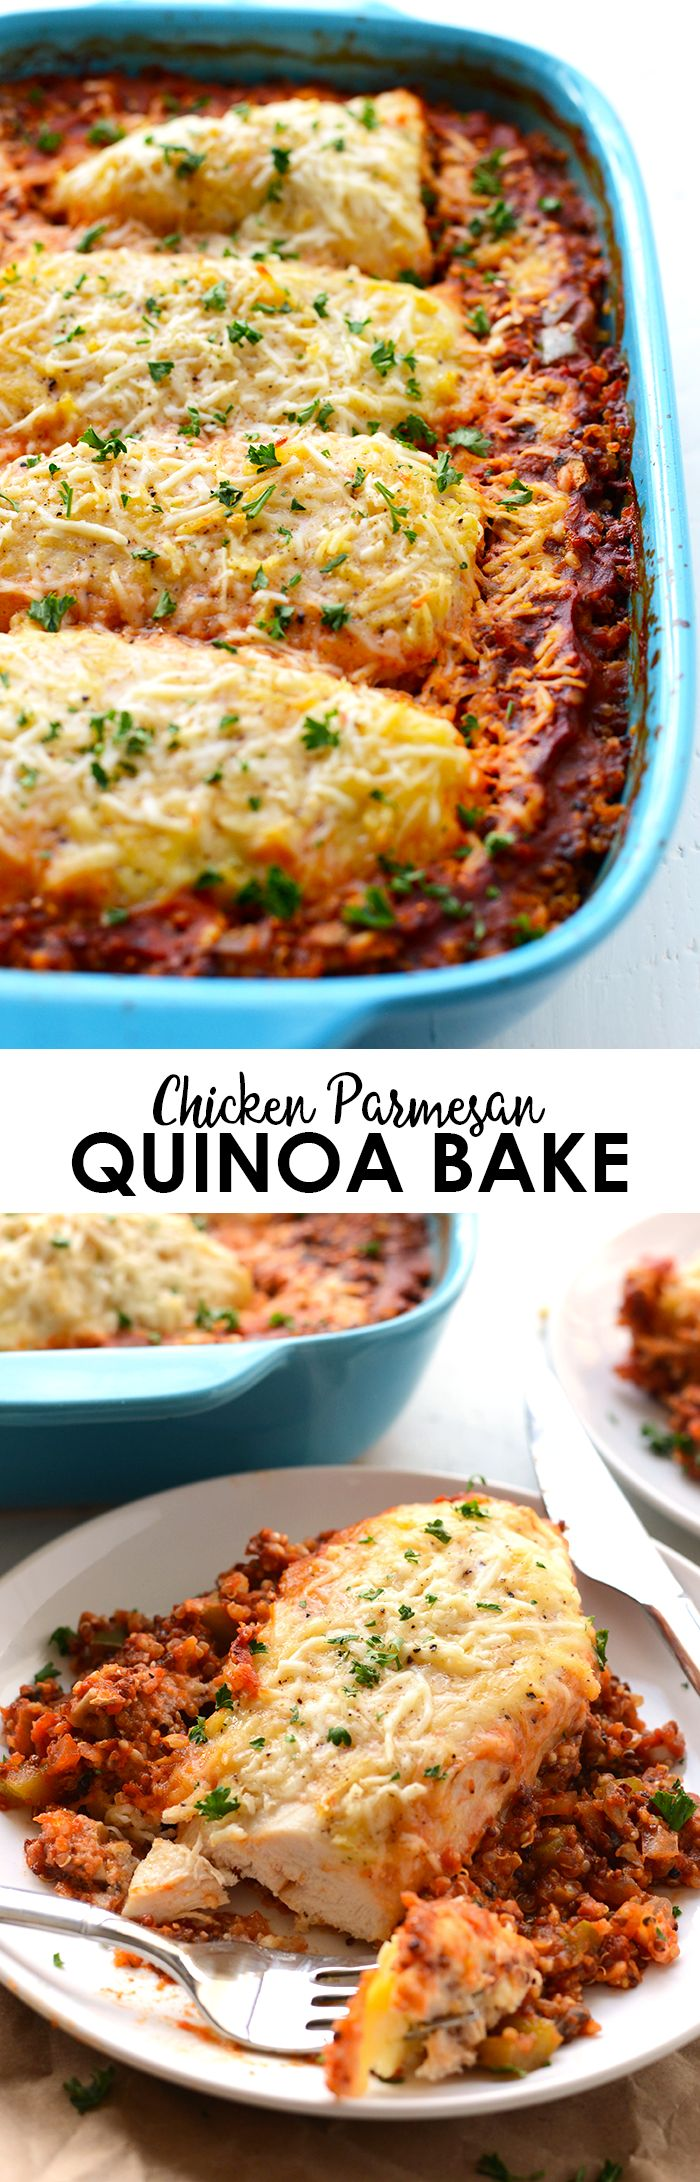 Looking for a lightened-up dinner that will feed the whole family? Make this protein-packed (and veggie-packed!) chicken parmesan quinoa bake in just 60-minutes! | FitFoodieFinds